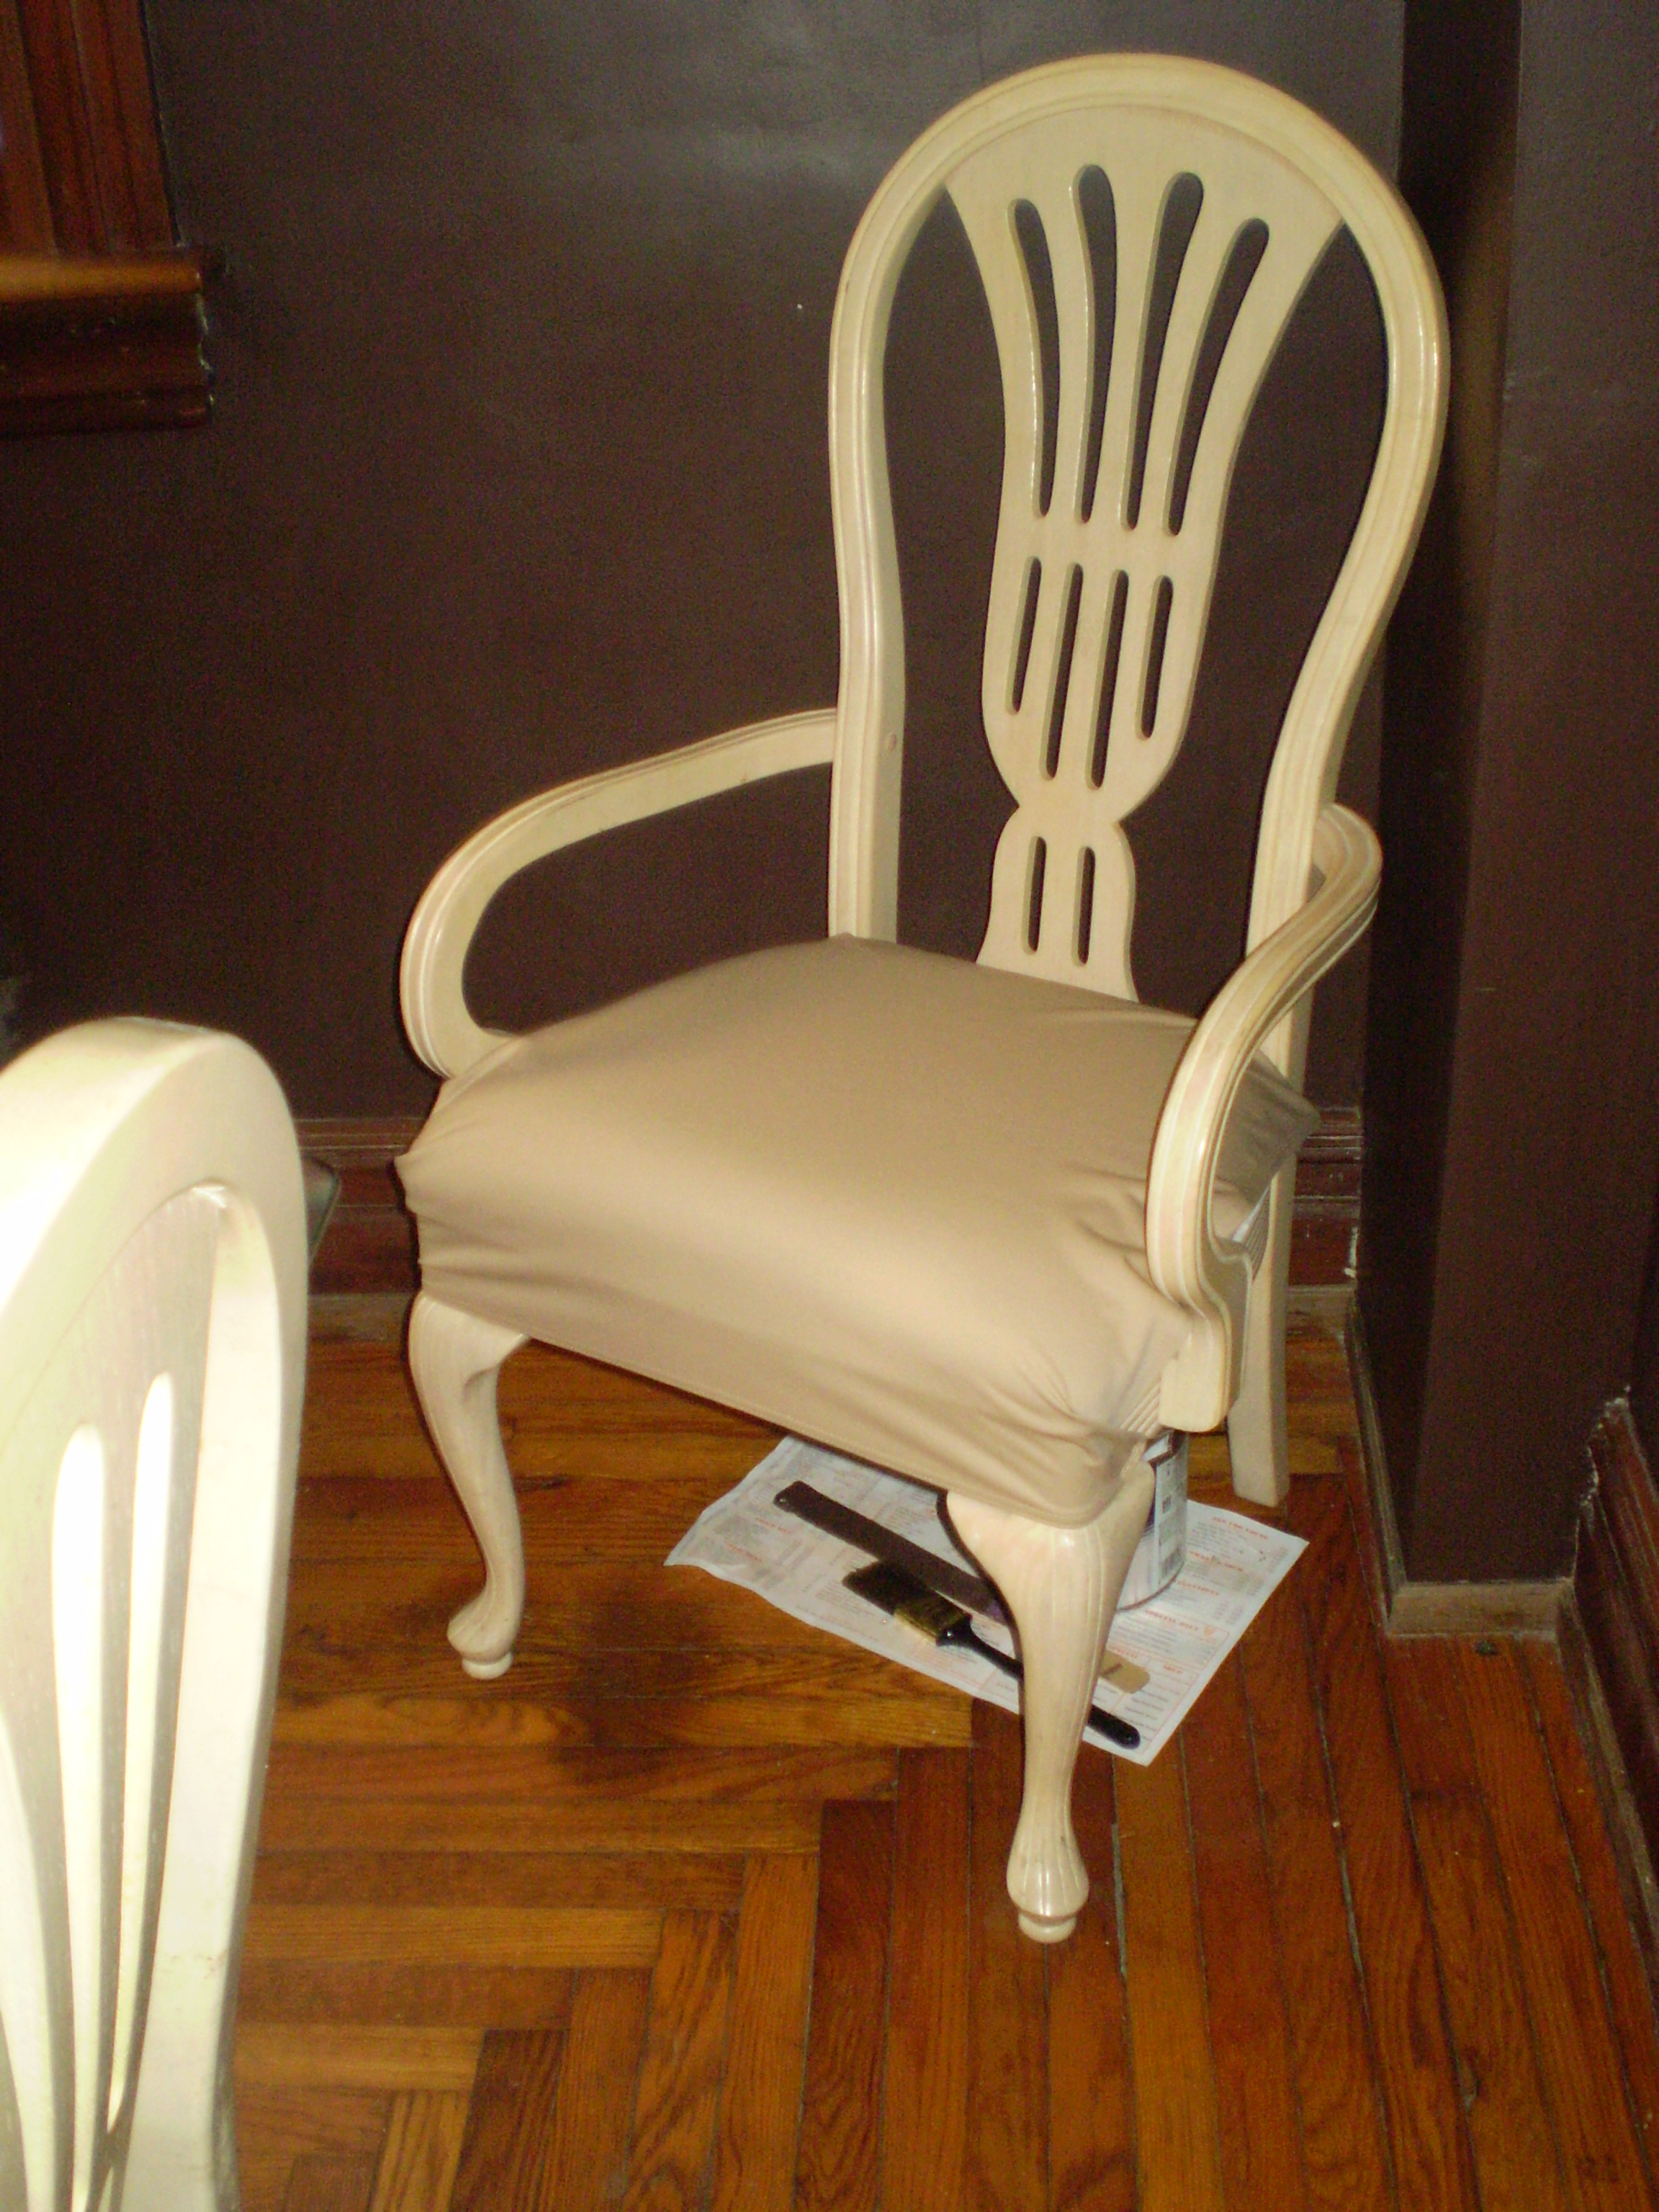 Plastic Seat Covers For Dining Room Chairs Dining Chair Protector Chair Pads And Cushions